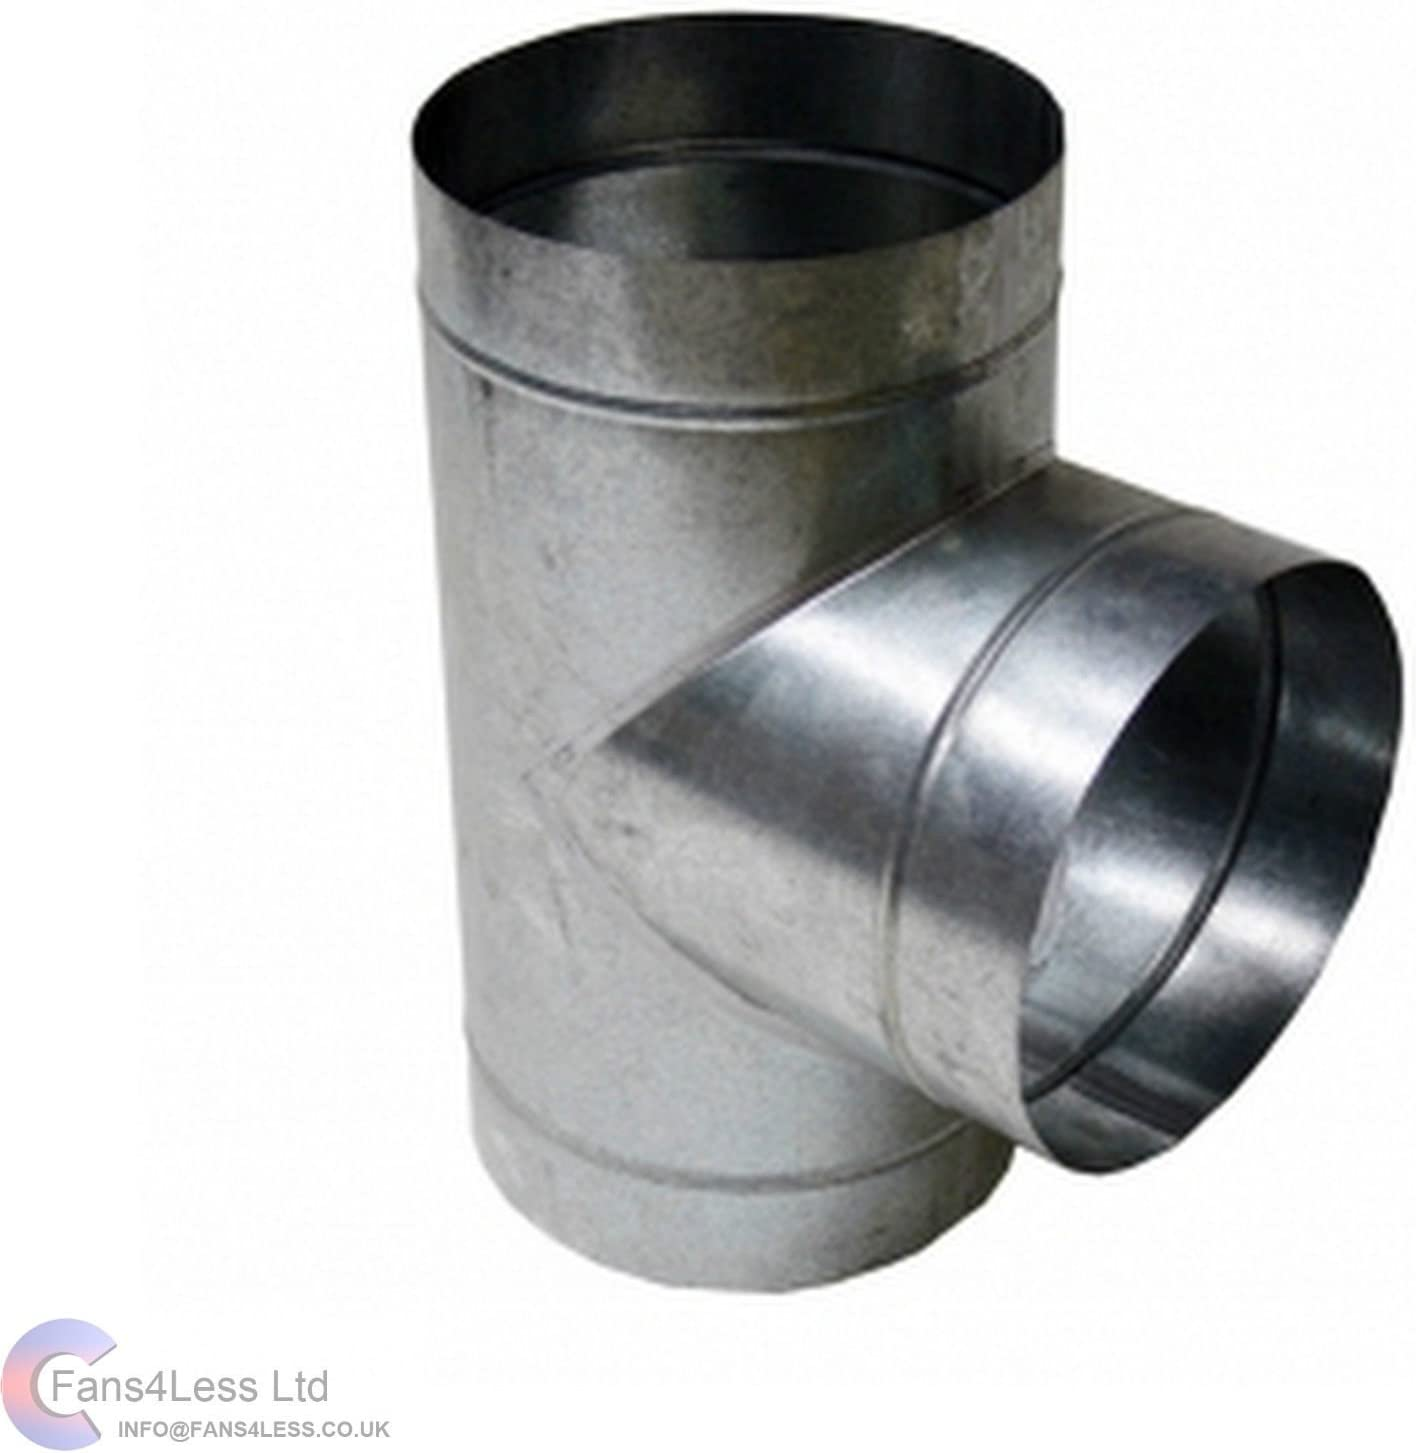 Metal Ducting T Piece Equal Connector For Extraction Fans Hydroponics